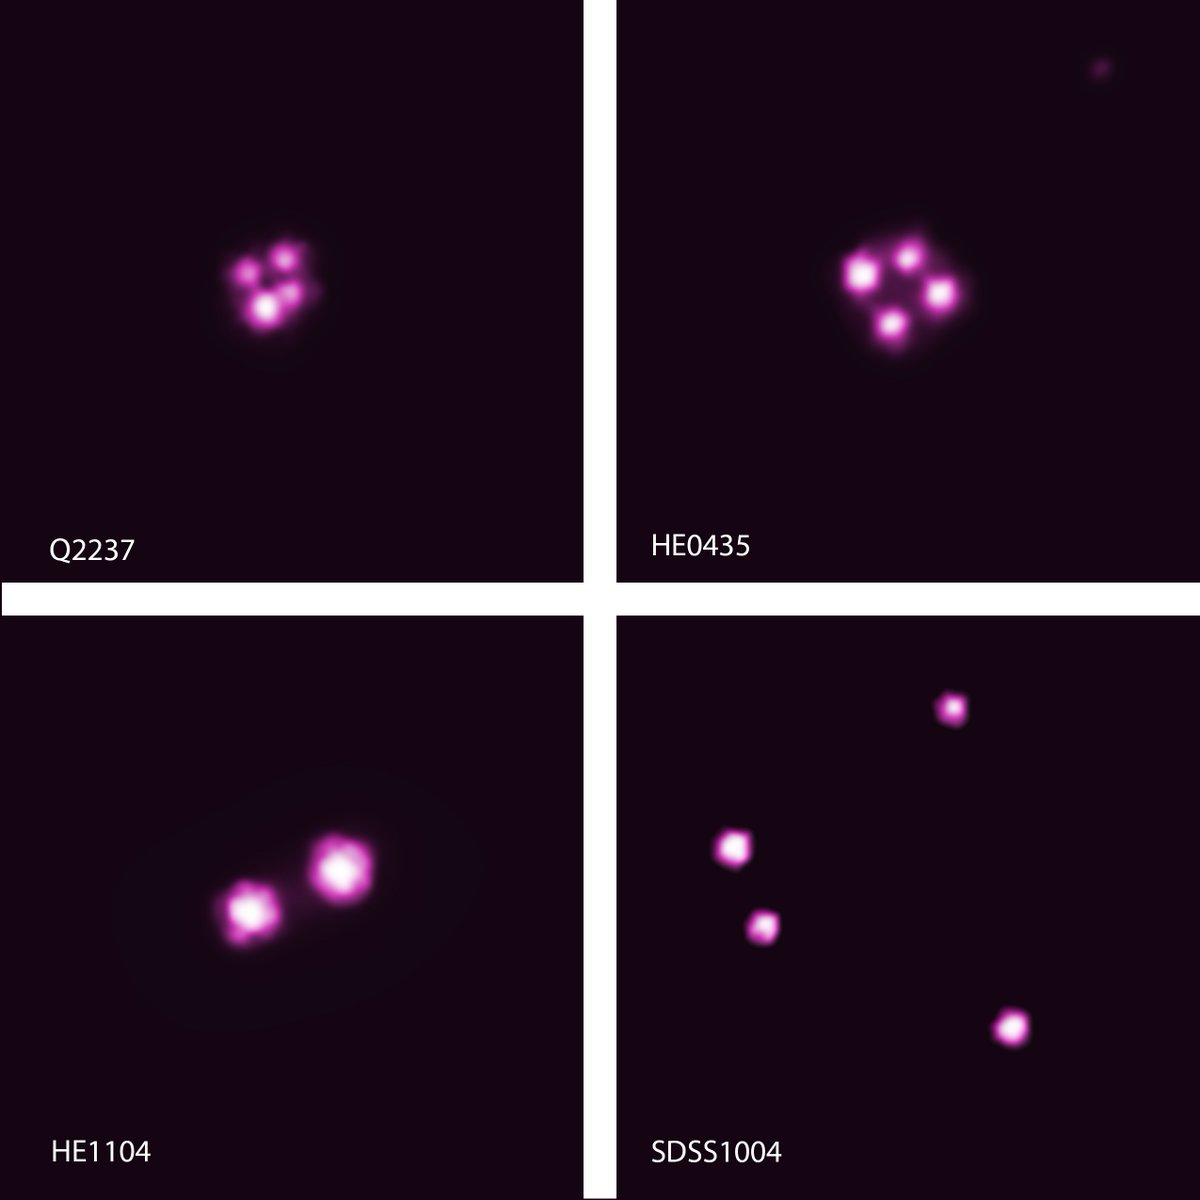 NASA's Chandra X-ray Observatory is at it again! 💫 This time, it's spotted six supermassive black holes that are spinning in space and heated to hundreds of millions of degrees. Howd they do it? Through a gravitational lens. What it means: go.nasa.gov/2Jo7r1R